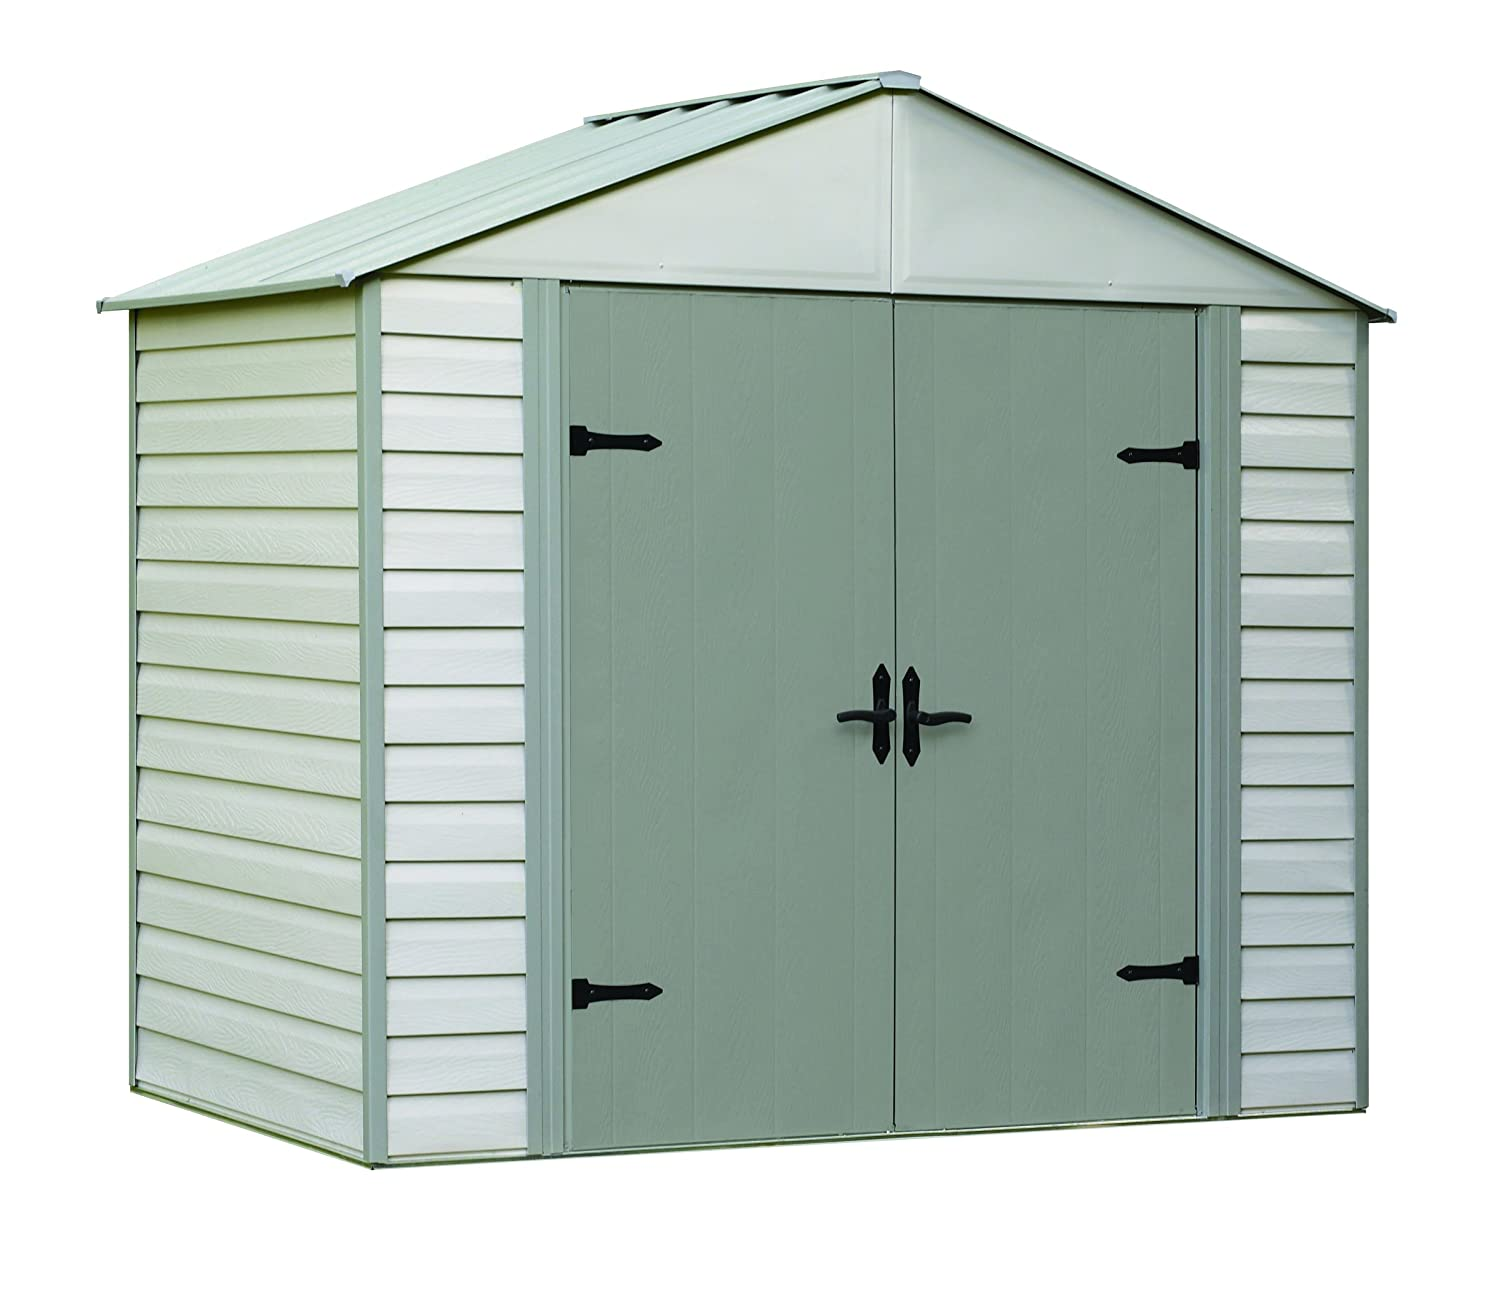 amazoncom arrow shed viking vinyl coated steel shed 8 x 5 garden outdoor